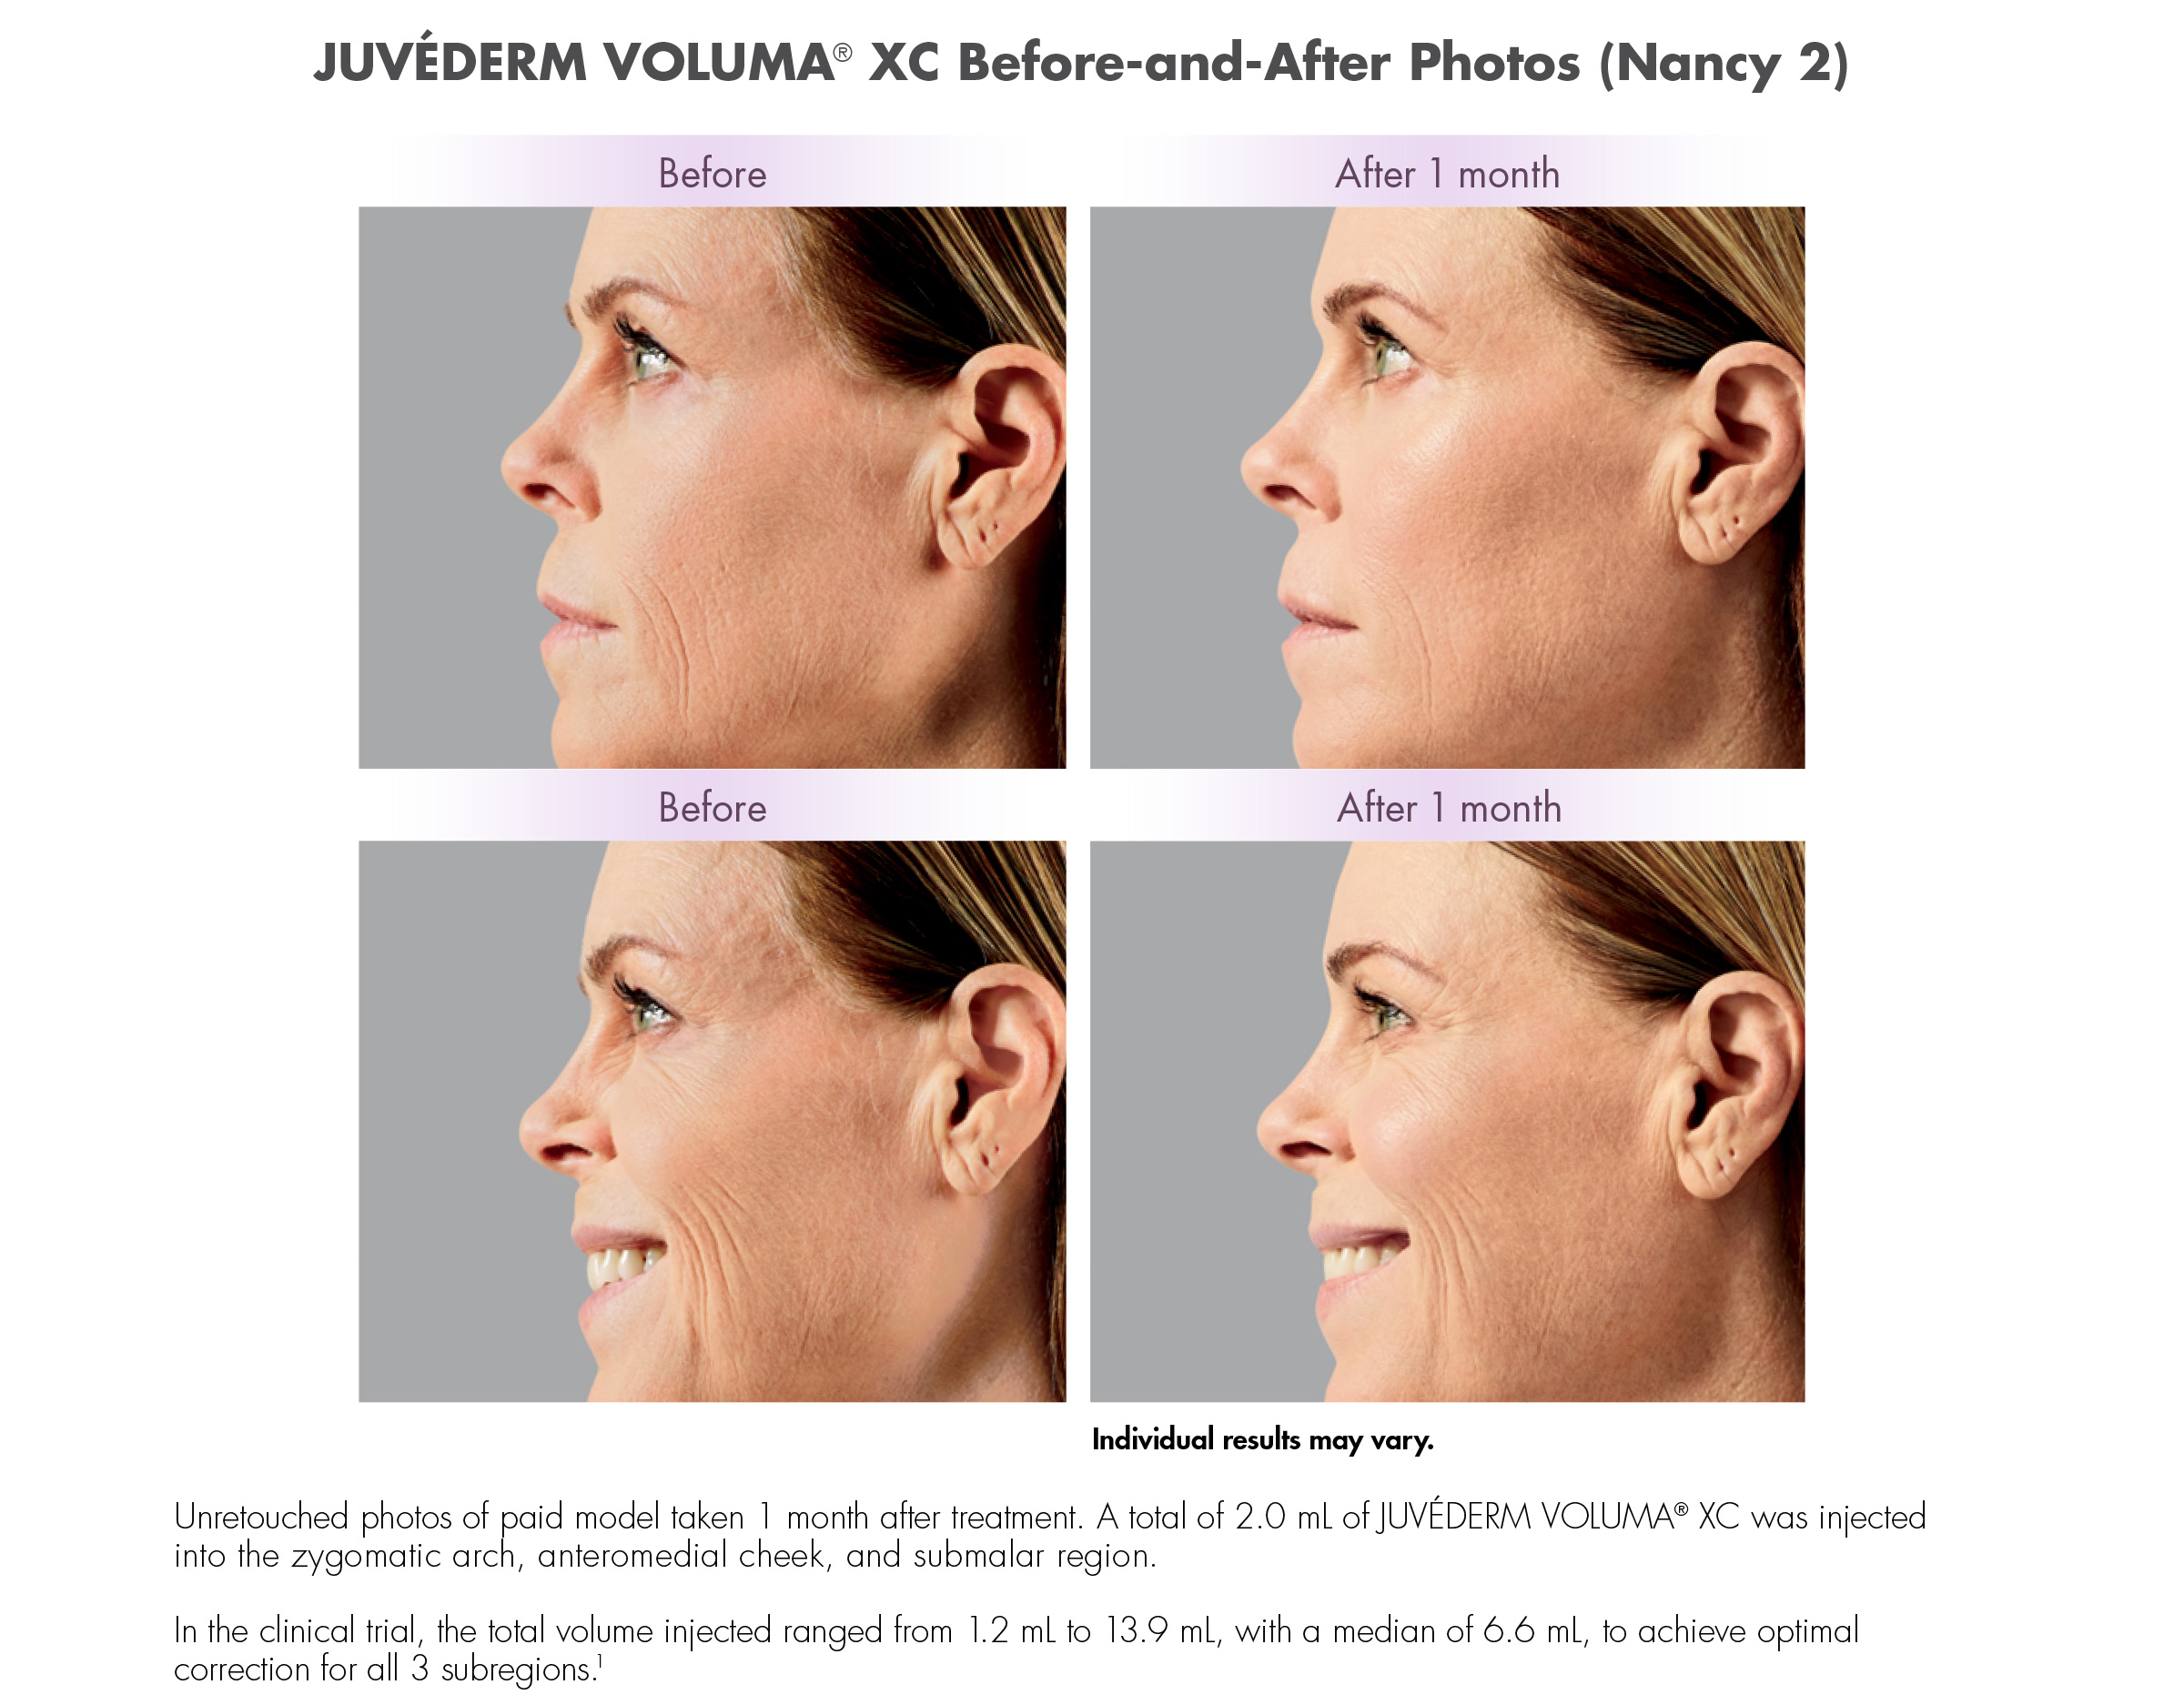 Juvederm Voluma XC Before and After Photos (Nancy)